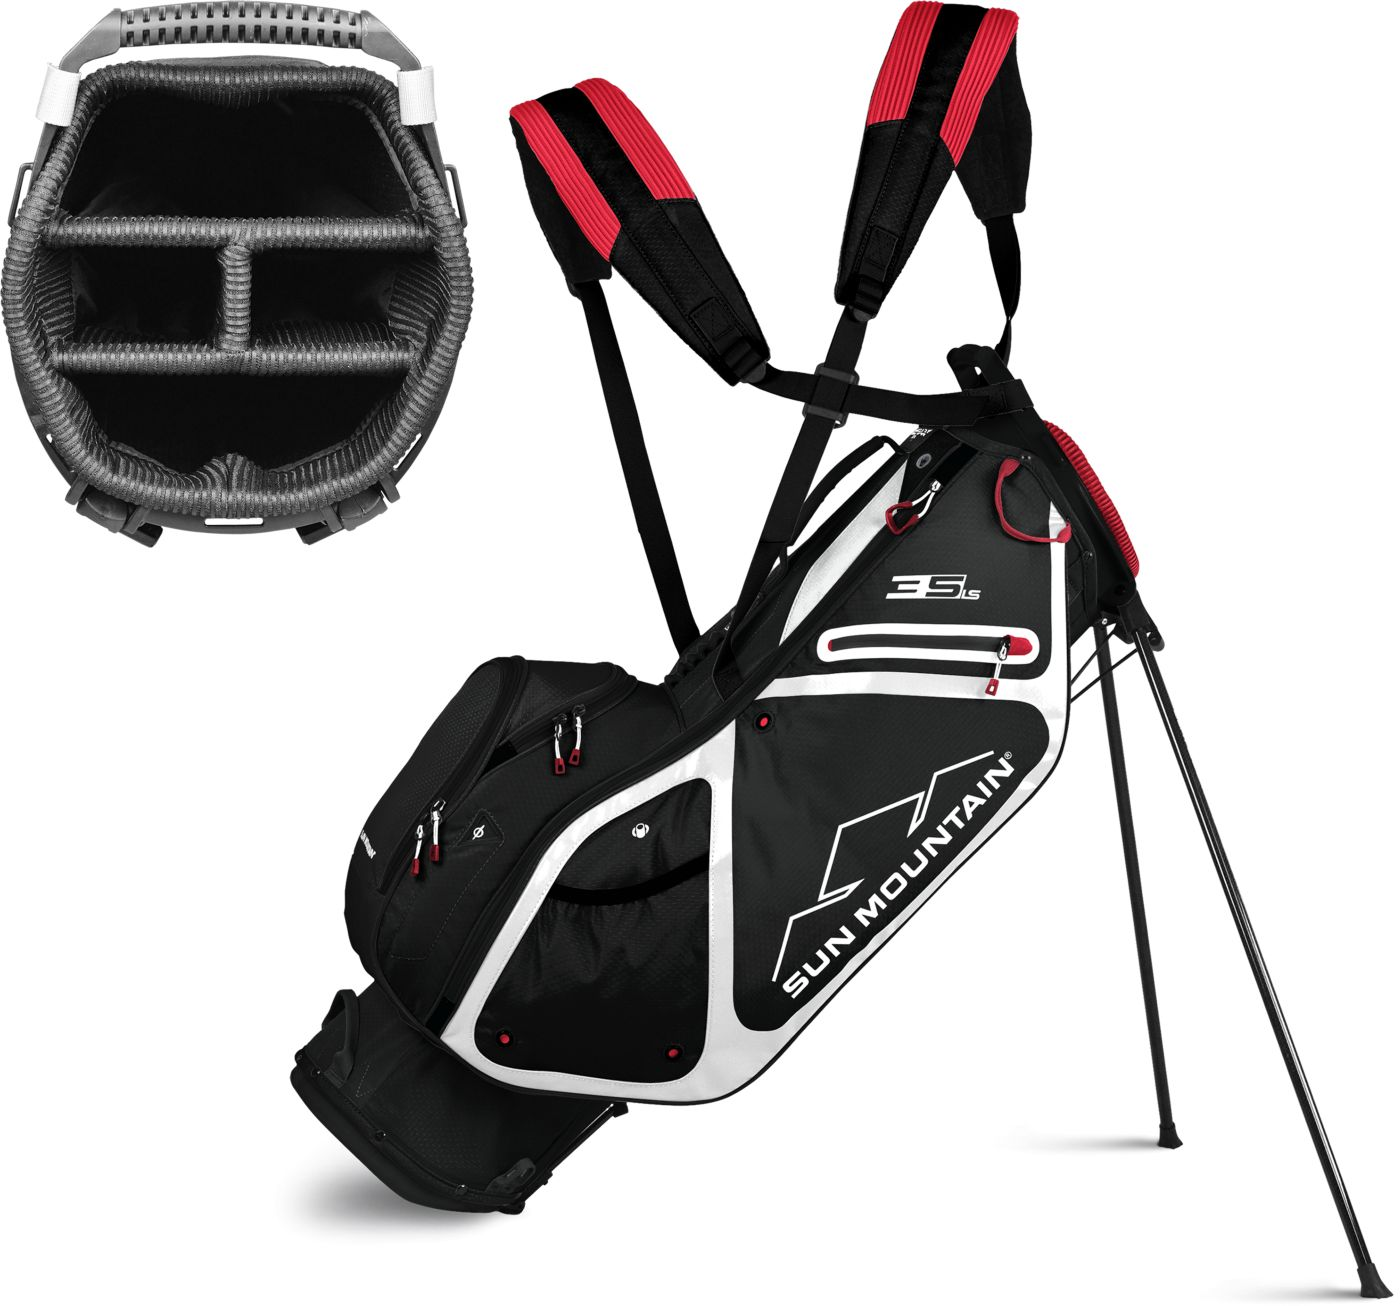 Sun Mountain 2019 3.5 LS Stand Golf Bag